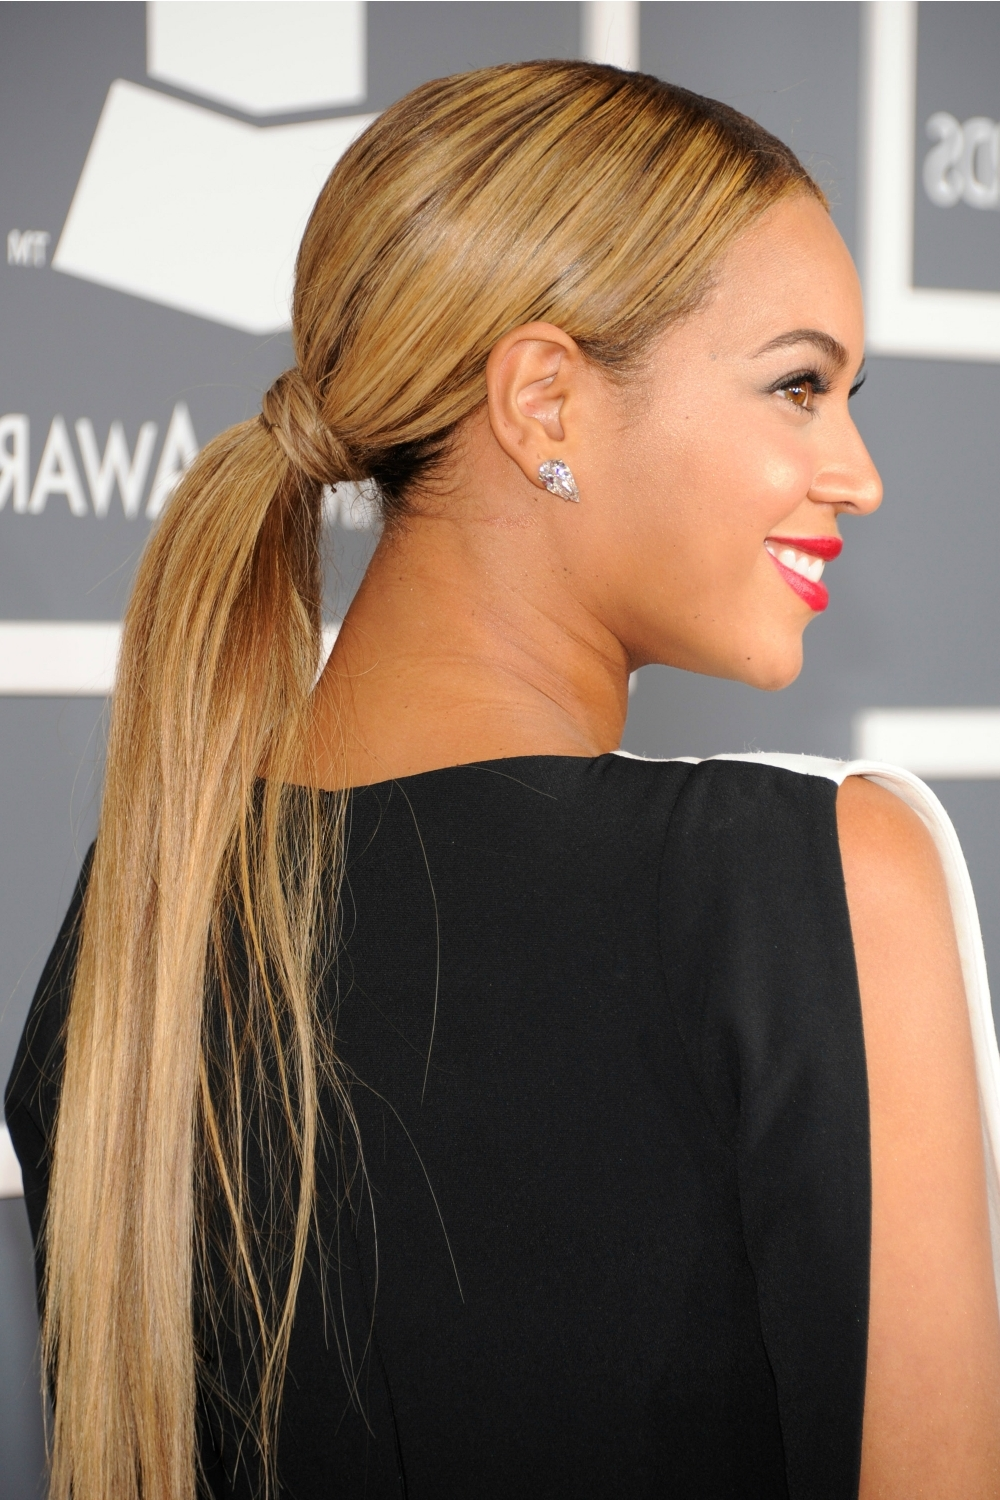 20 Ponytail Hairstyles – Easy Ponytail Ideas You Should This Summer With Regard To Preferred Sleek Pony Hairstyles With Thick Side Bangs (View 14 of 20)